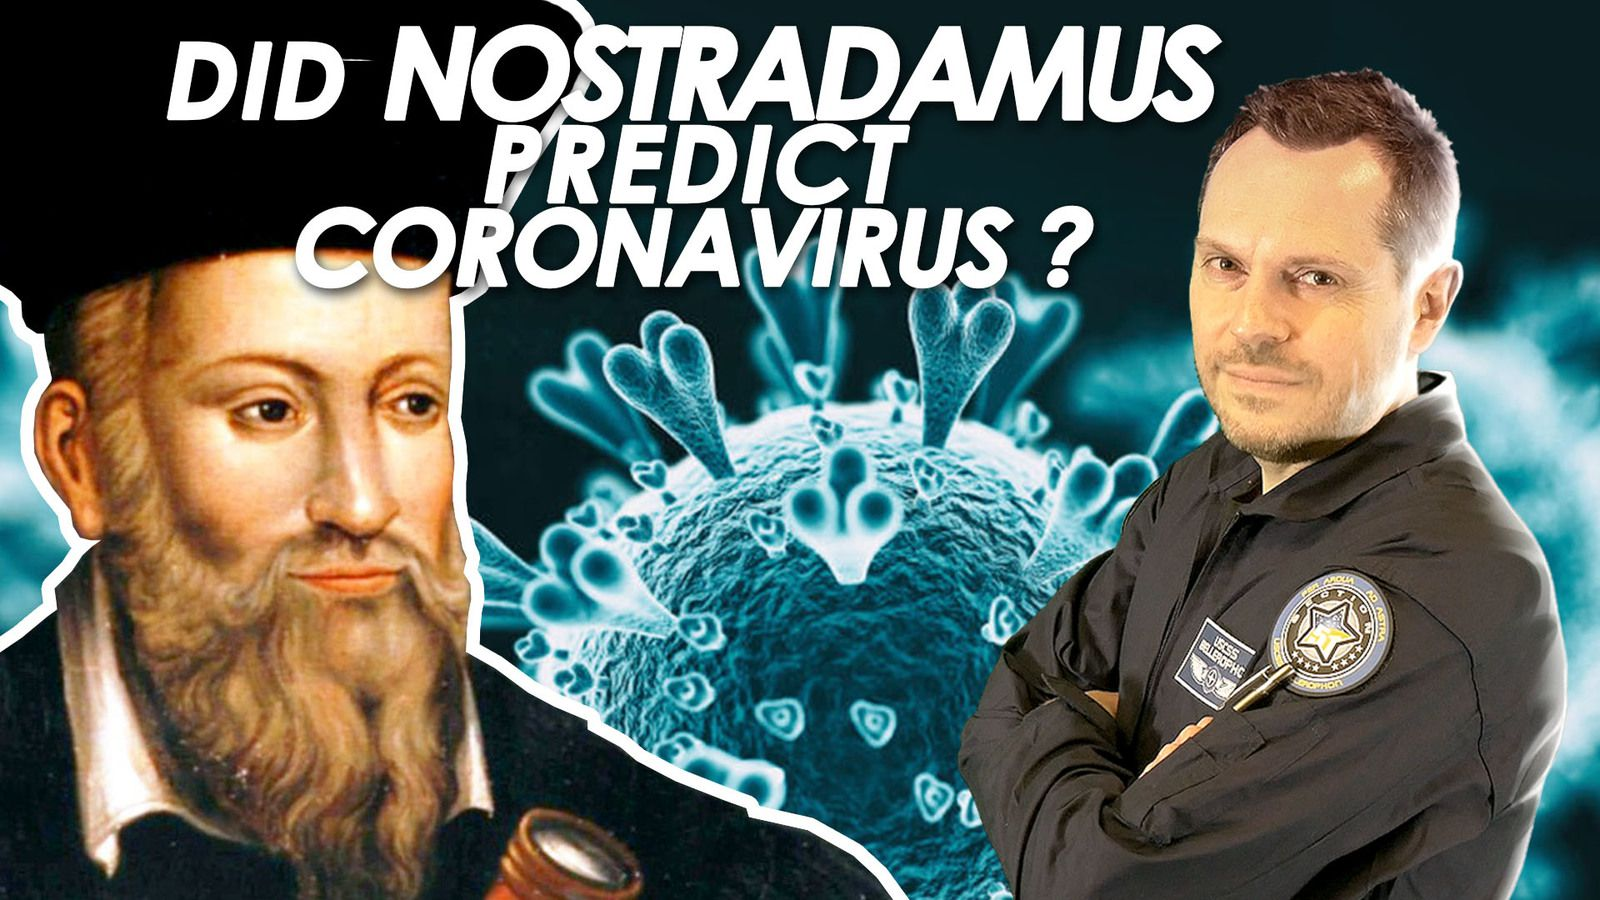 👁 Did Nostradamus Predict Coronavirus and COVID-19 ?